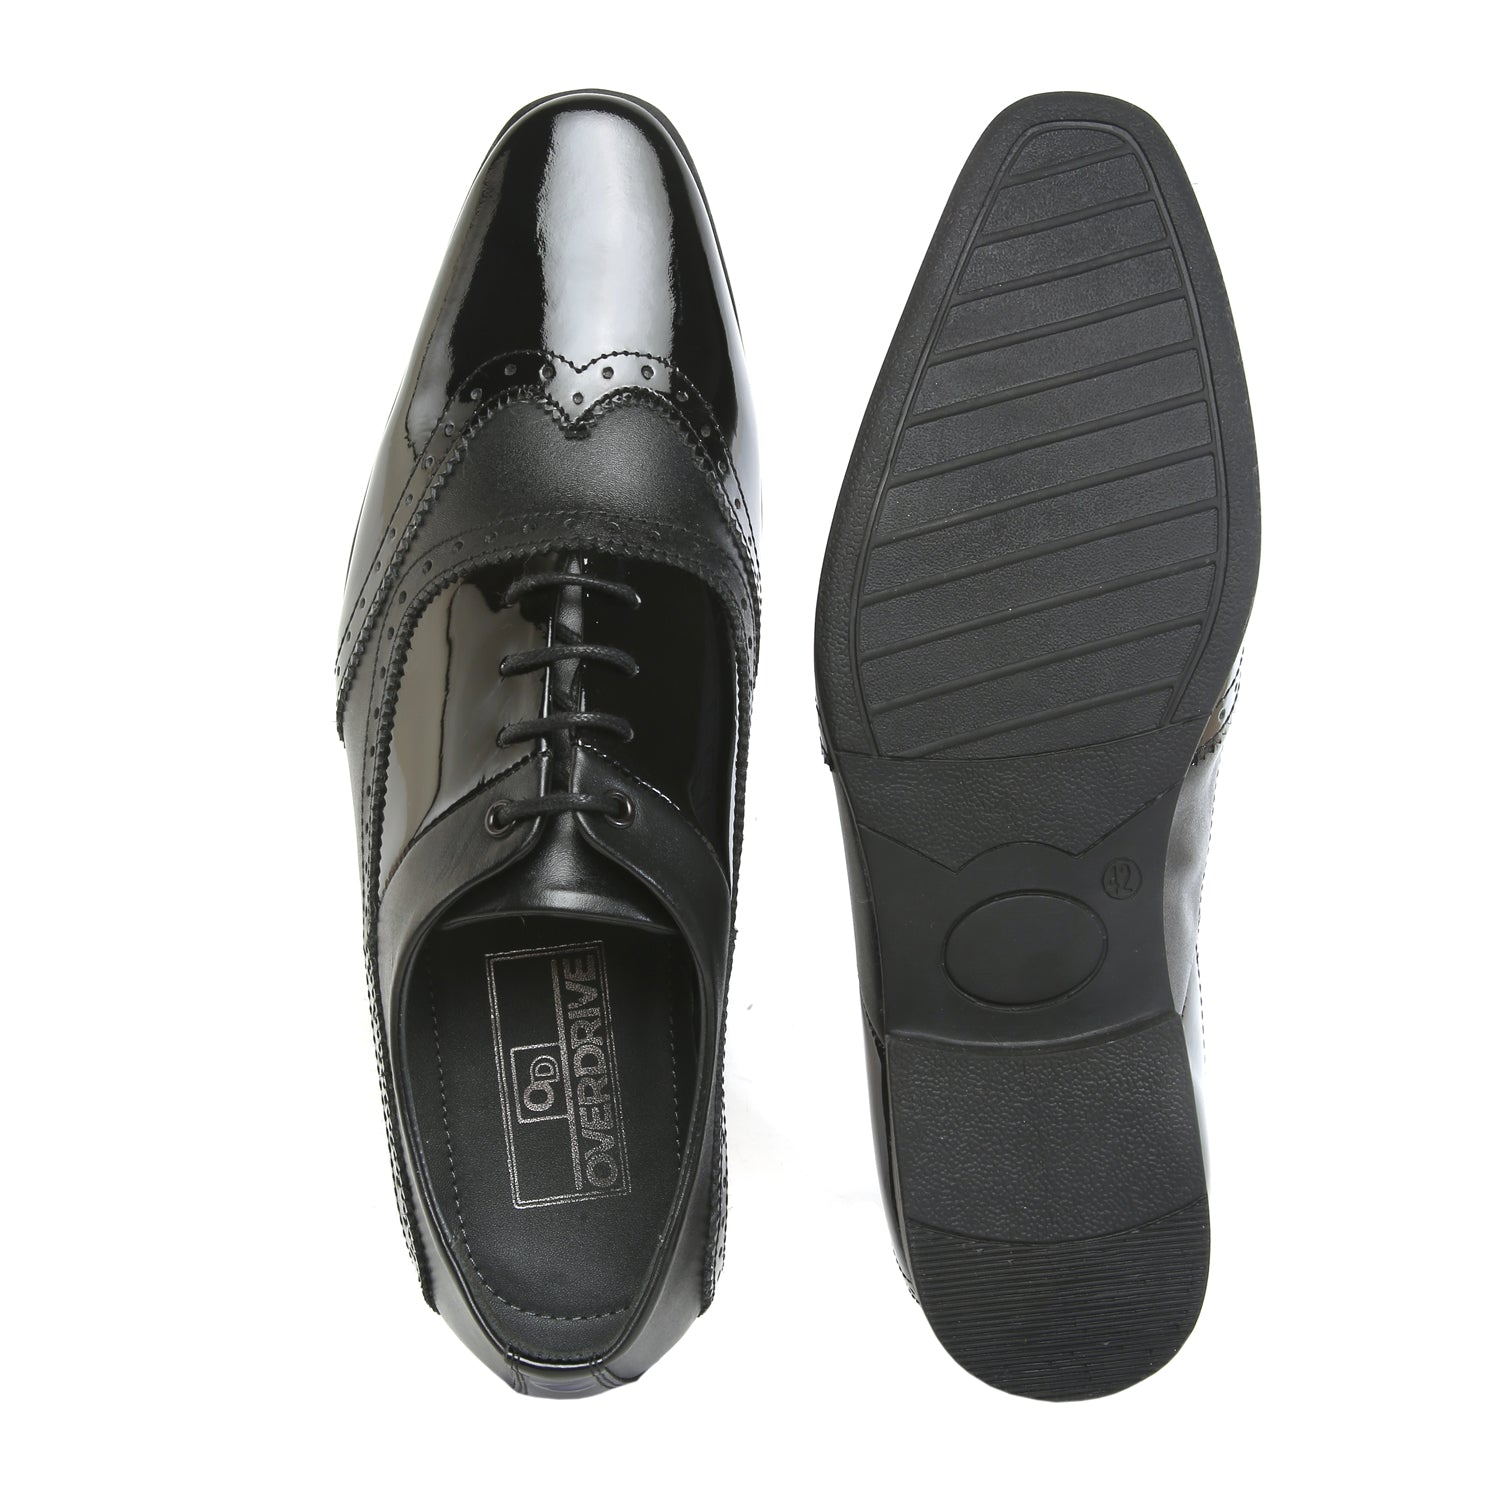 Shine On with Lace Up Black Patent Shoe